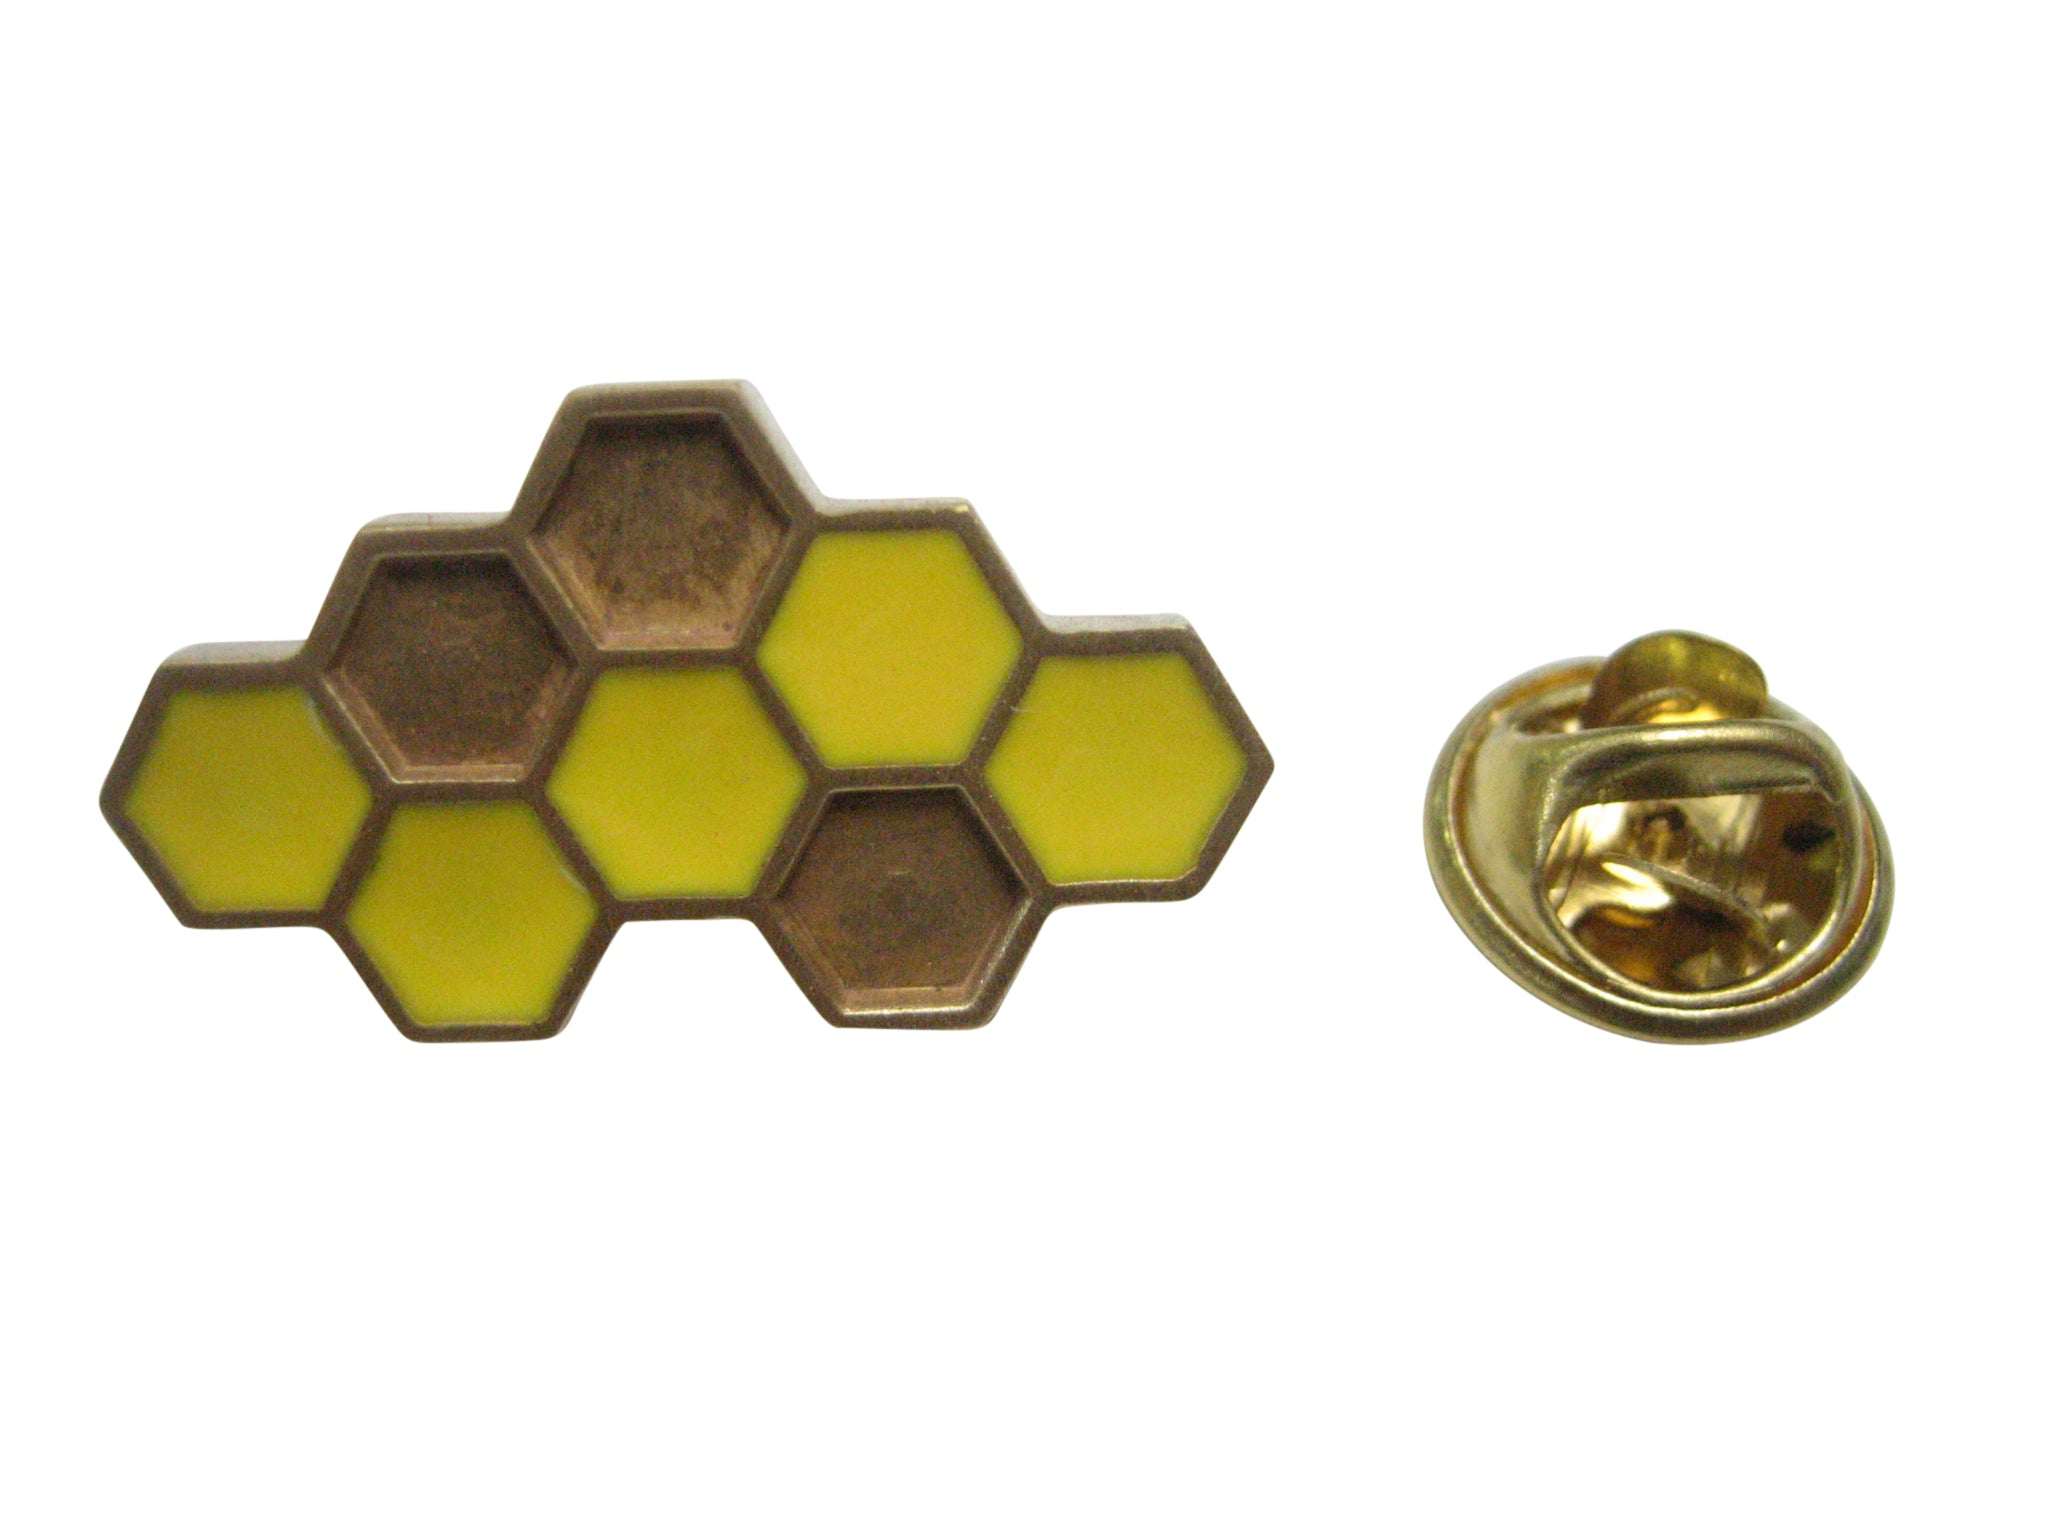 Gold and Brown Toned Honey Bee Honey Comb Lapel Pin